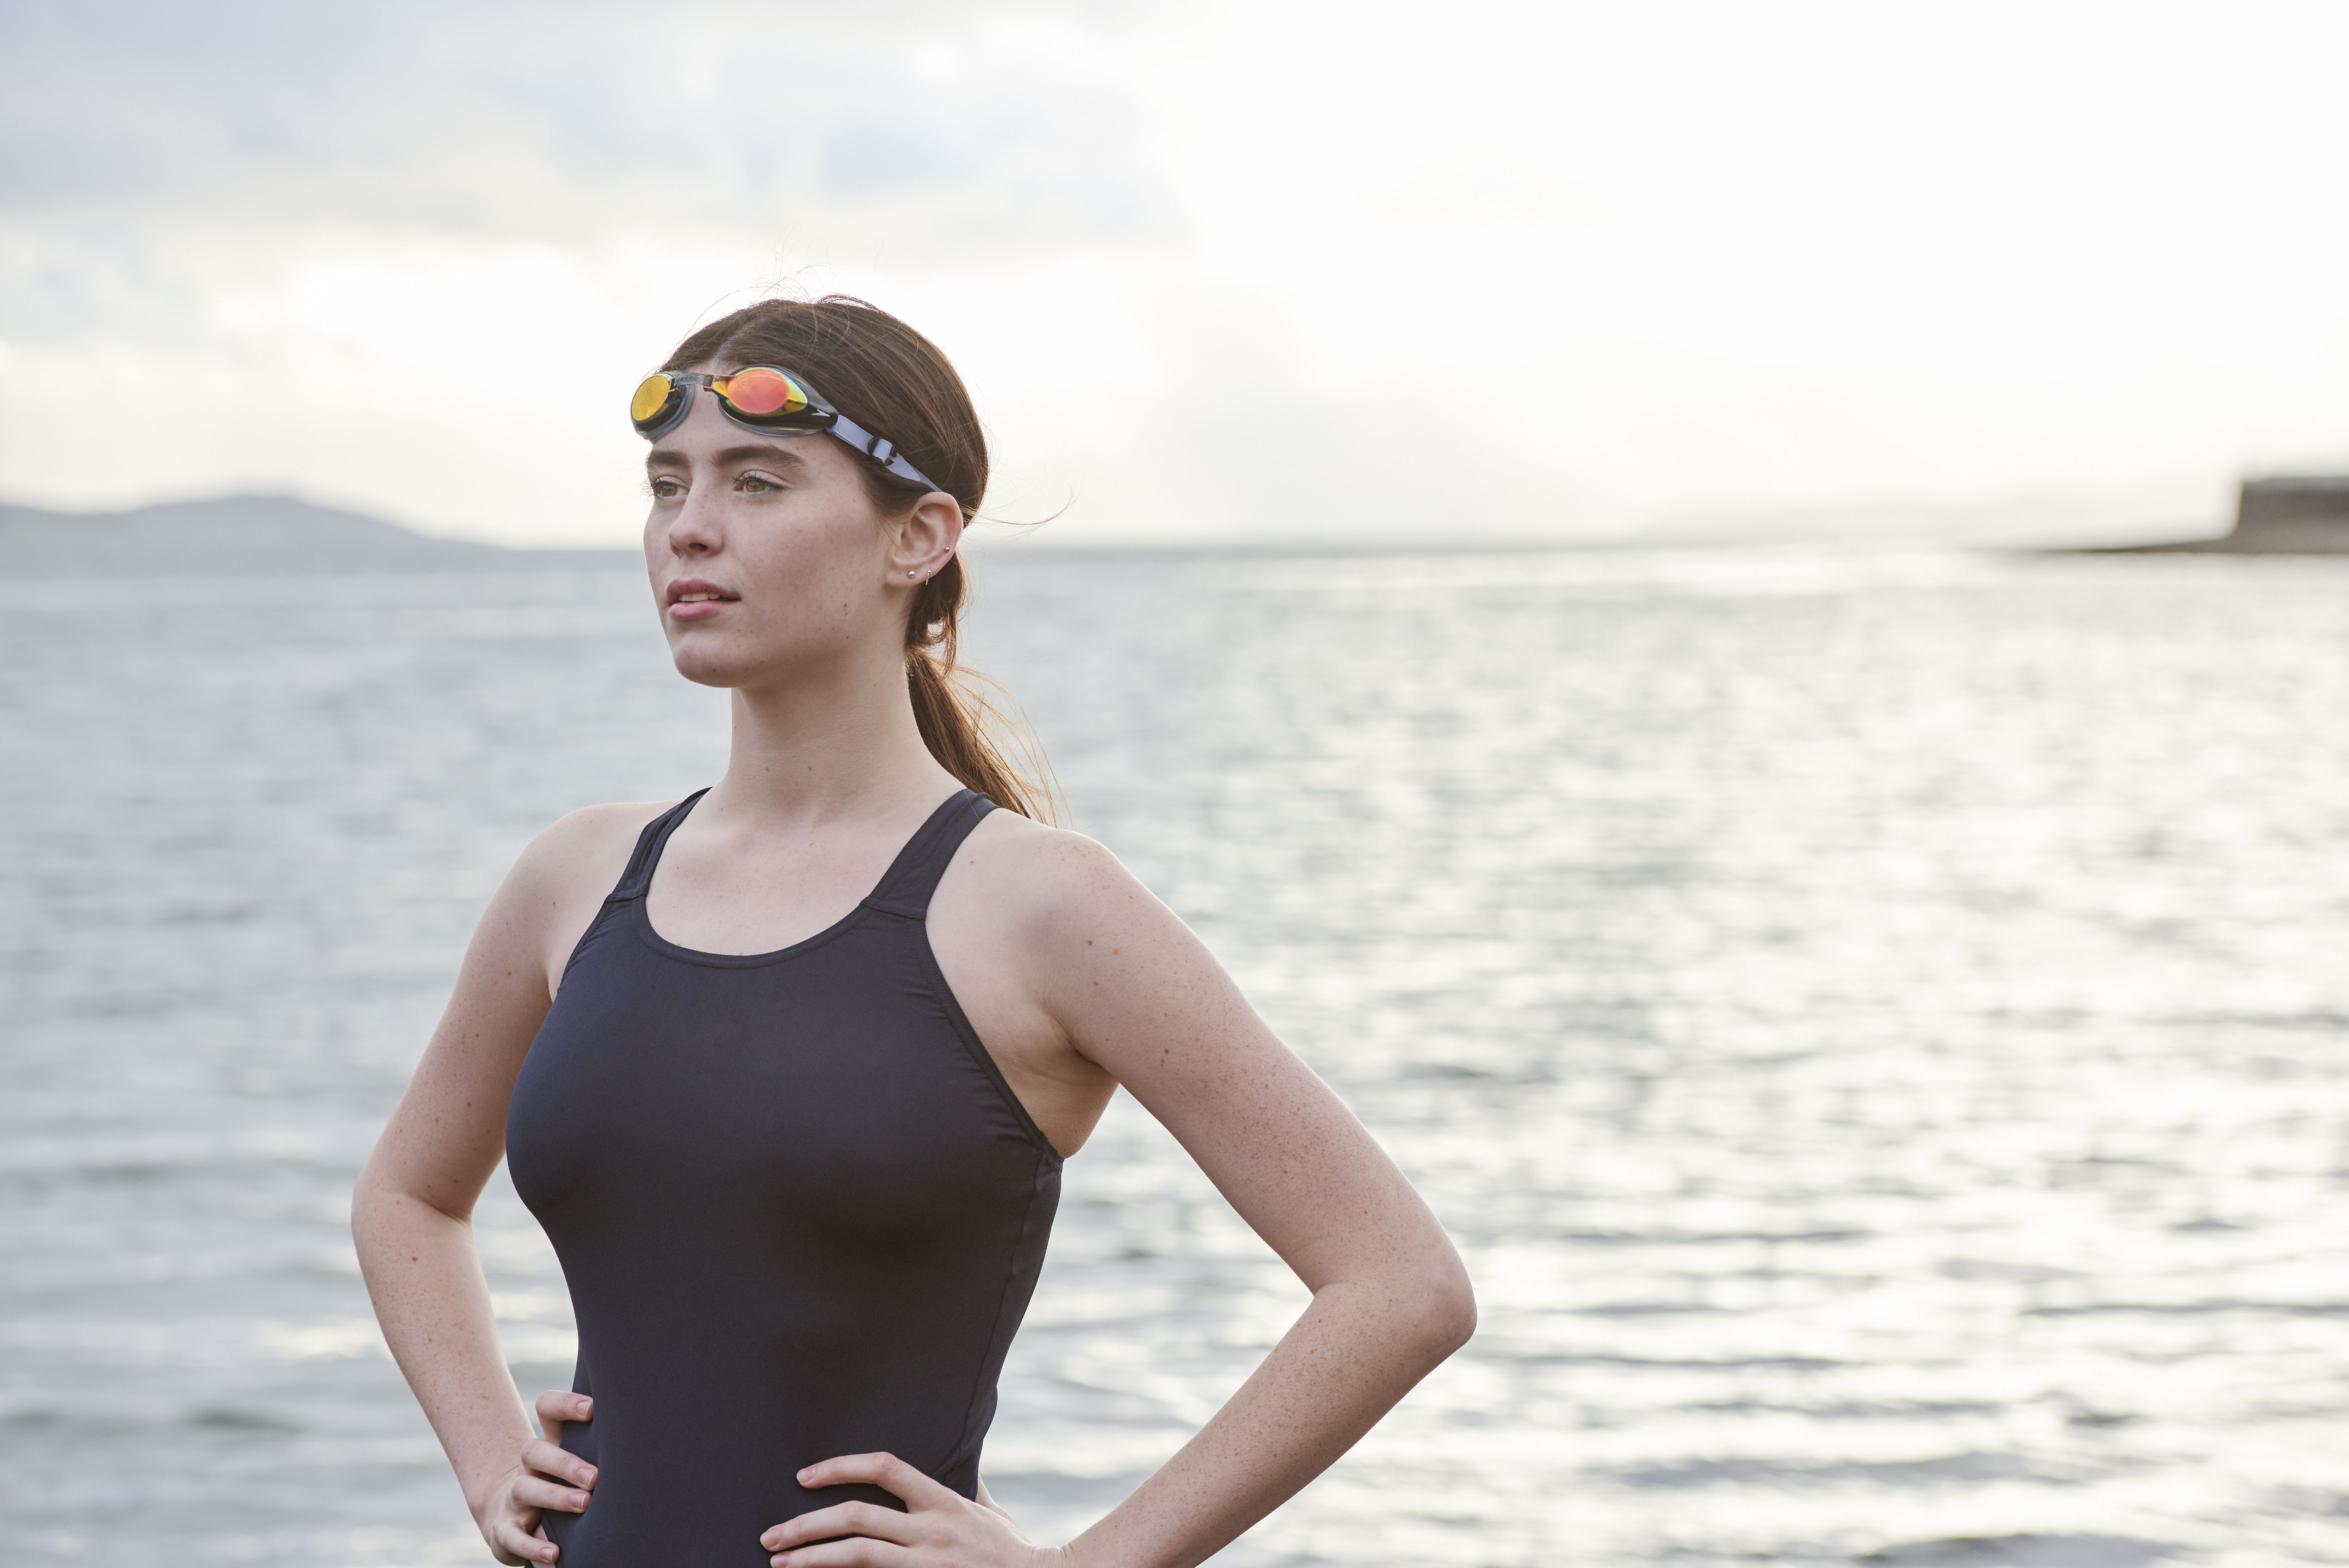 a3e38cd486f8 The 7 Best Swimming Goggles of 2019